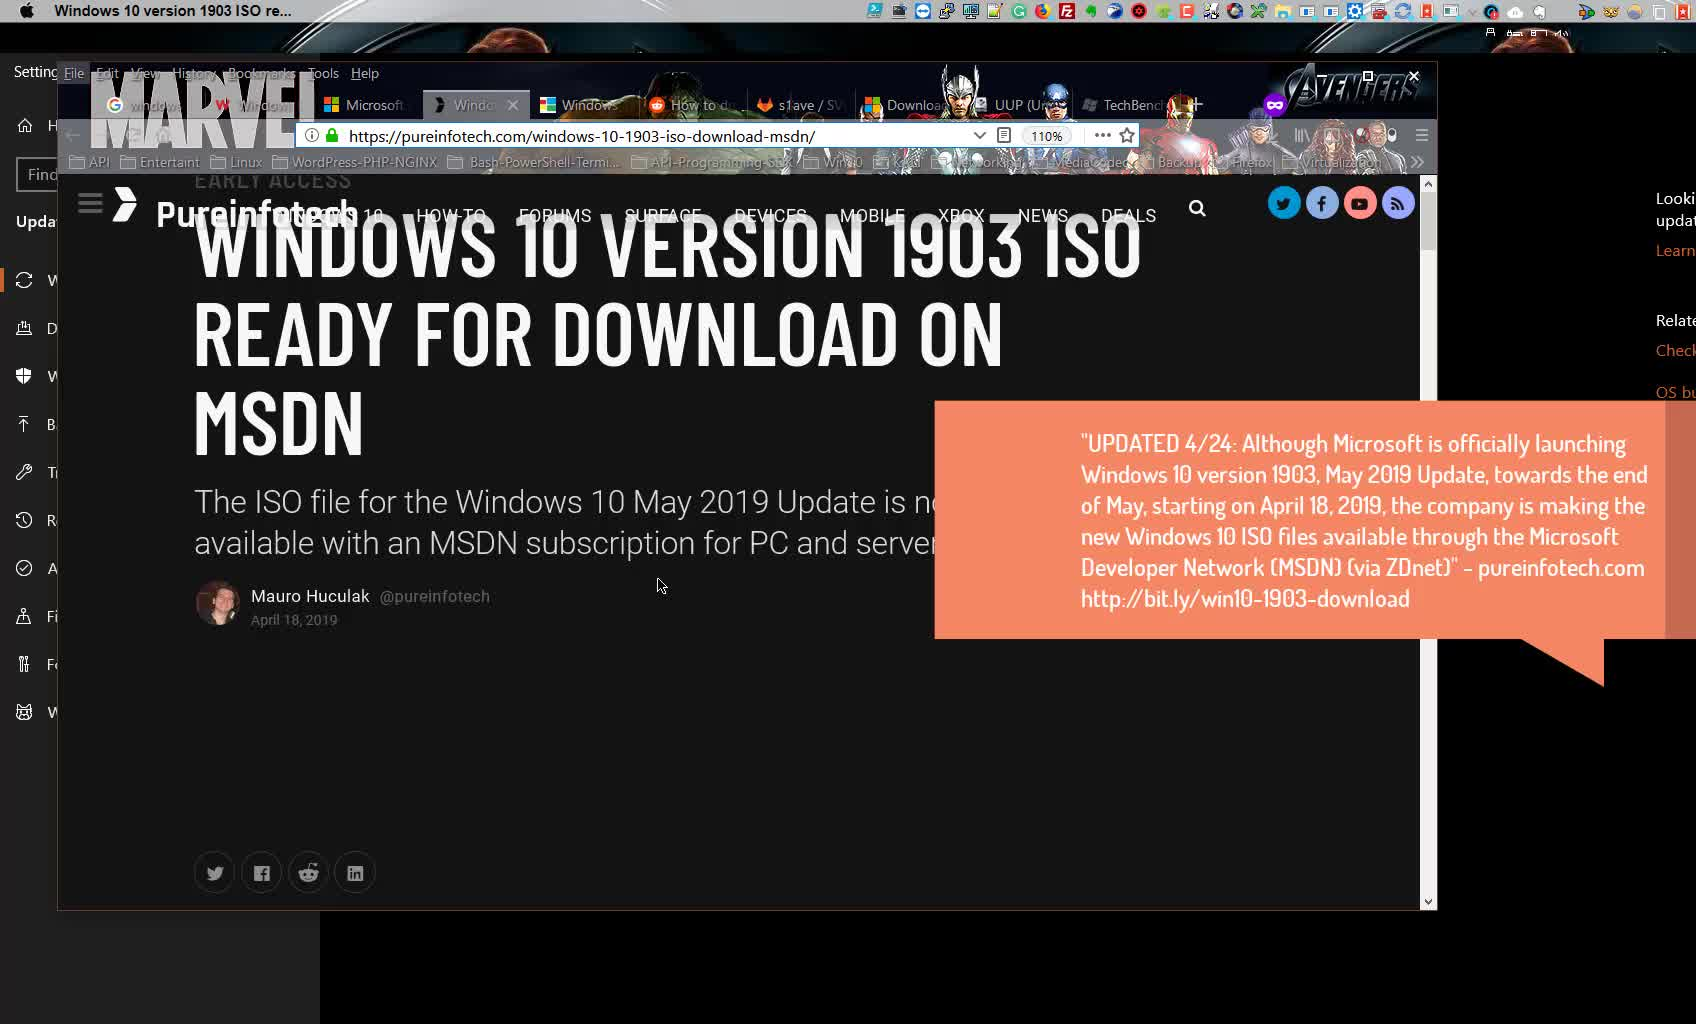 1001 ways to download Windows 10 RTM 1903 Update ISO MSDN UUP TechBench SVF ISO Evaluation Center | Windows 10 Server 2019